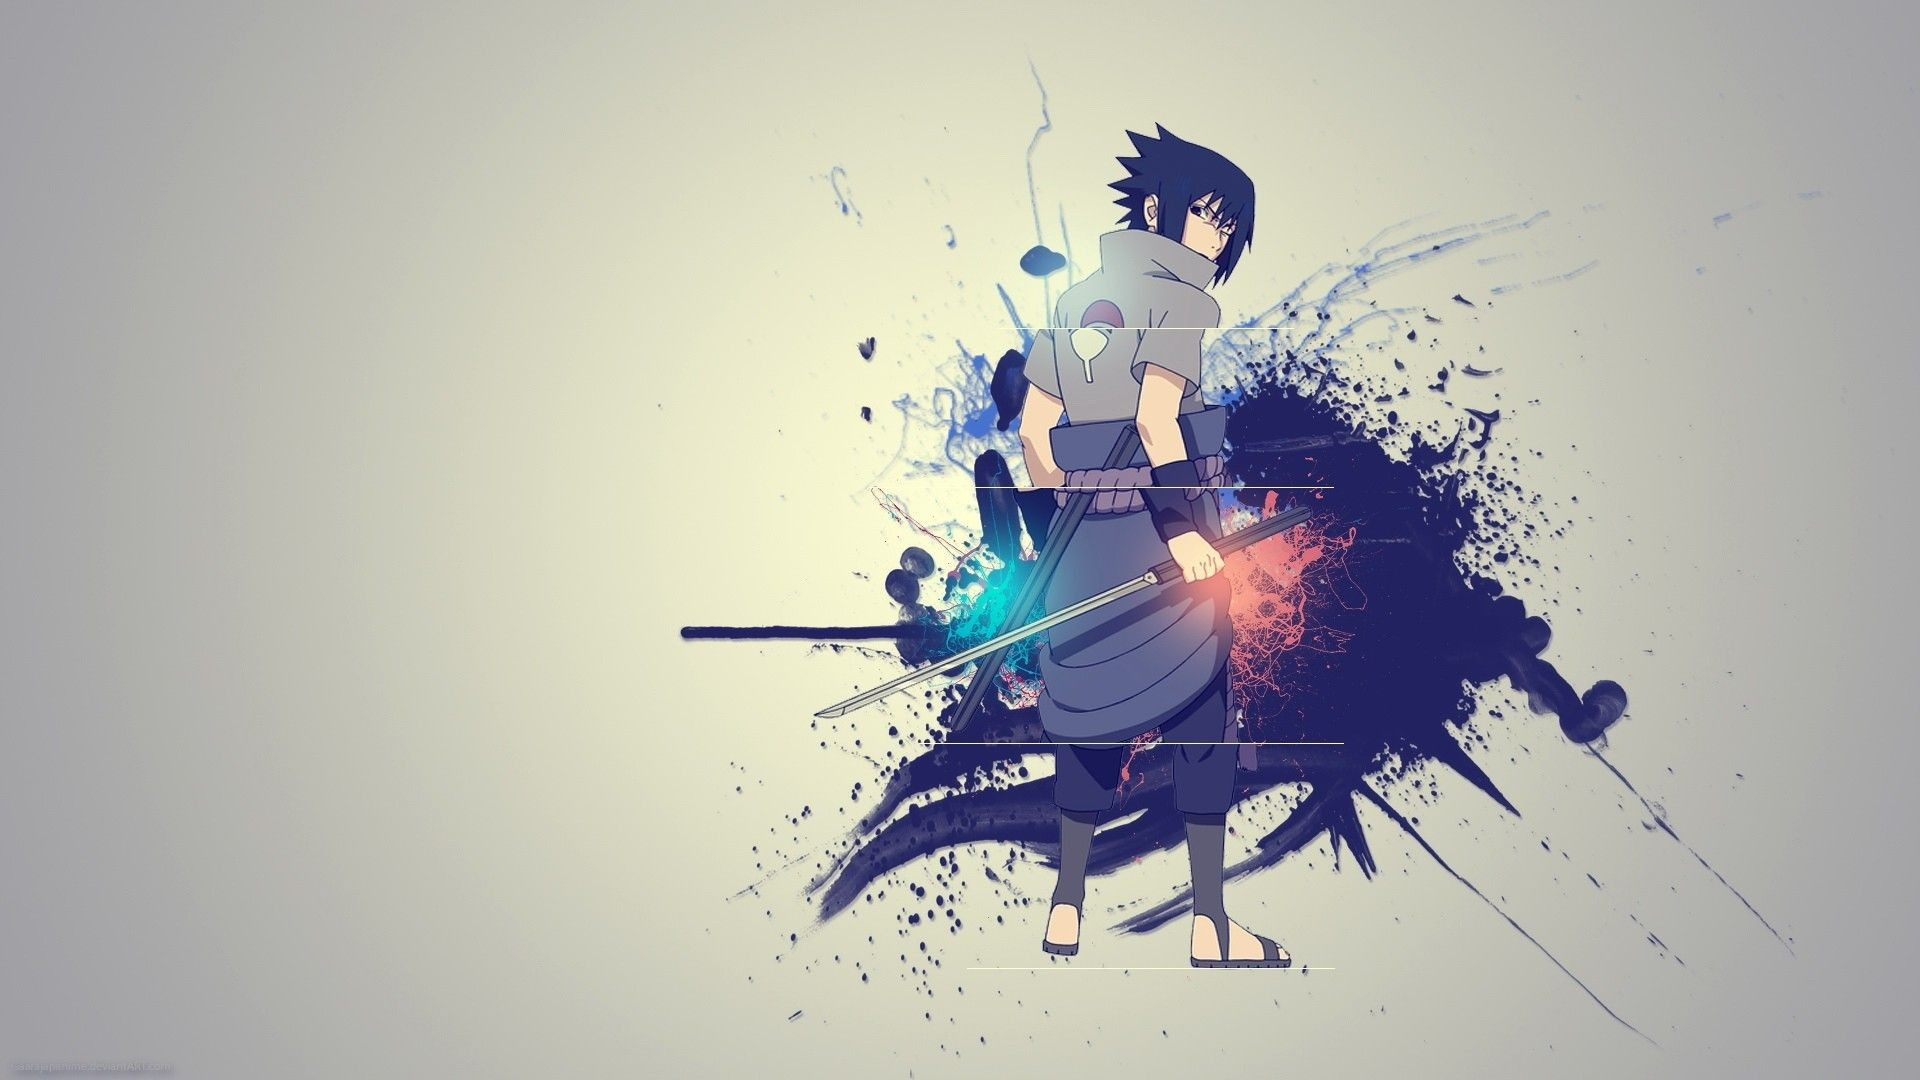 Sasuke Uchiha Wallpaper 1 Download Free Awesome Full HD